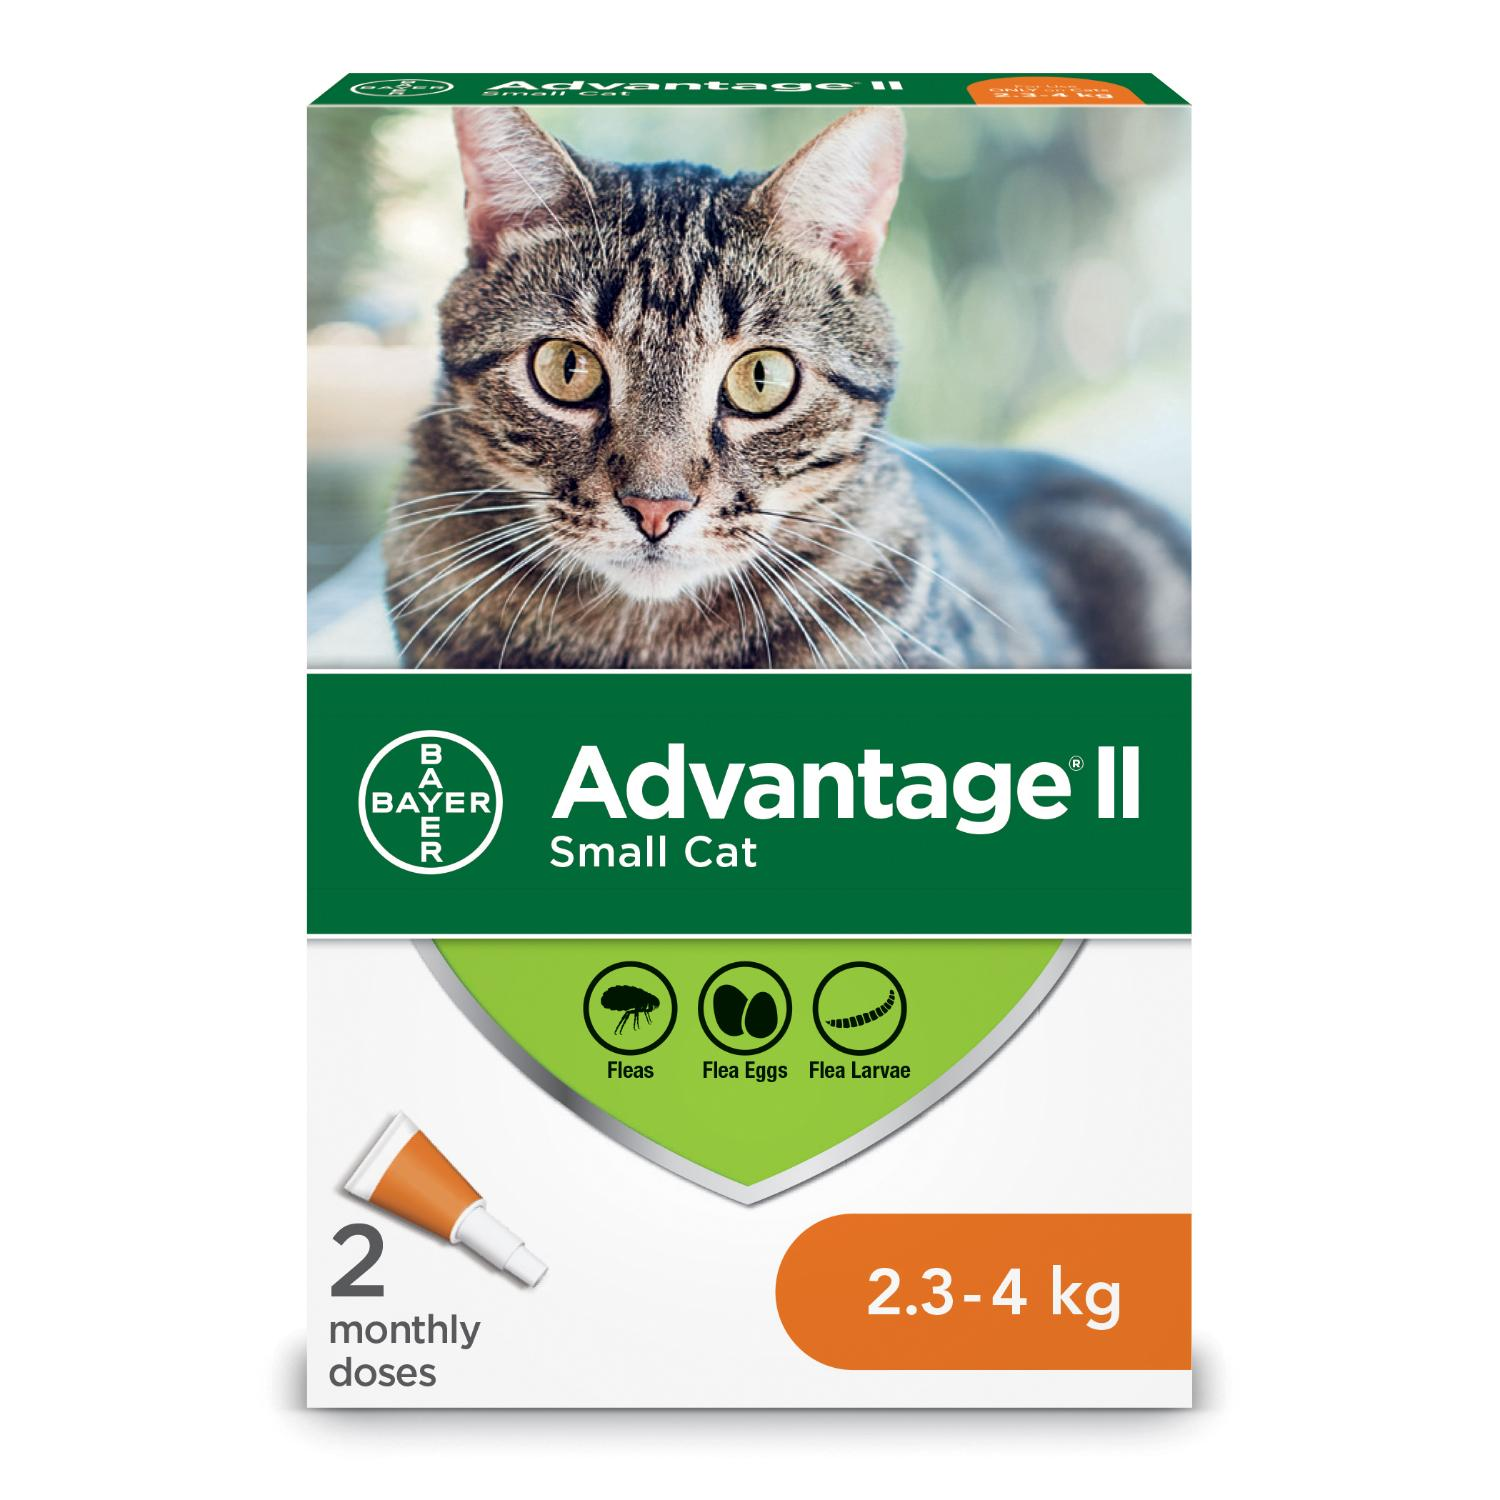 Bayer Advantage II Flea Protection for Small Cats 2.3-4-kg, 2-pk